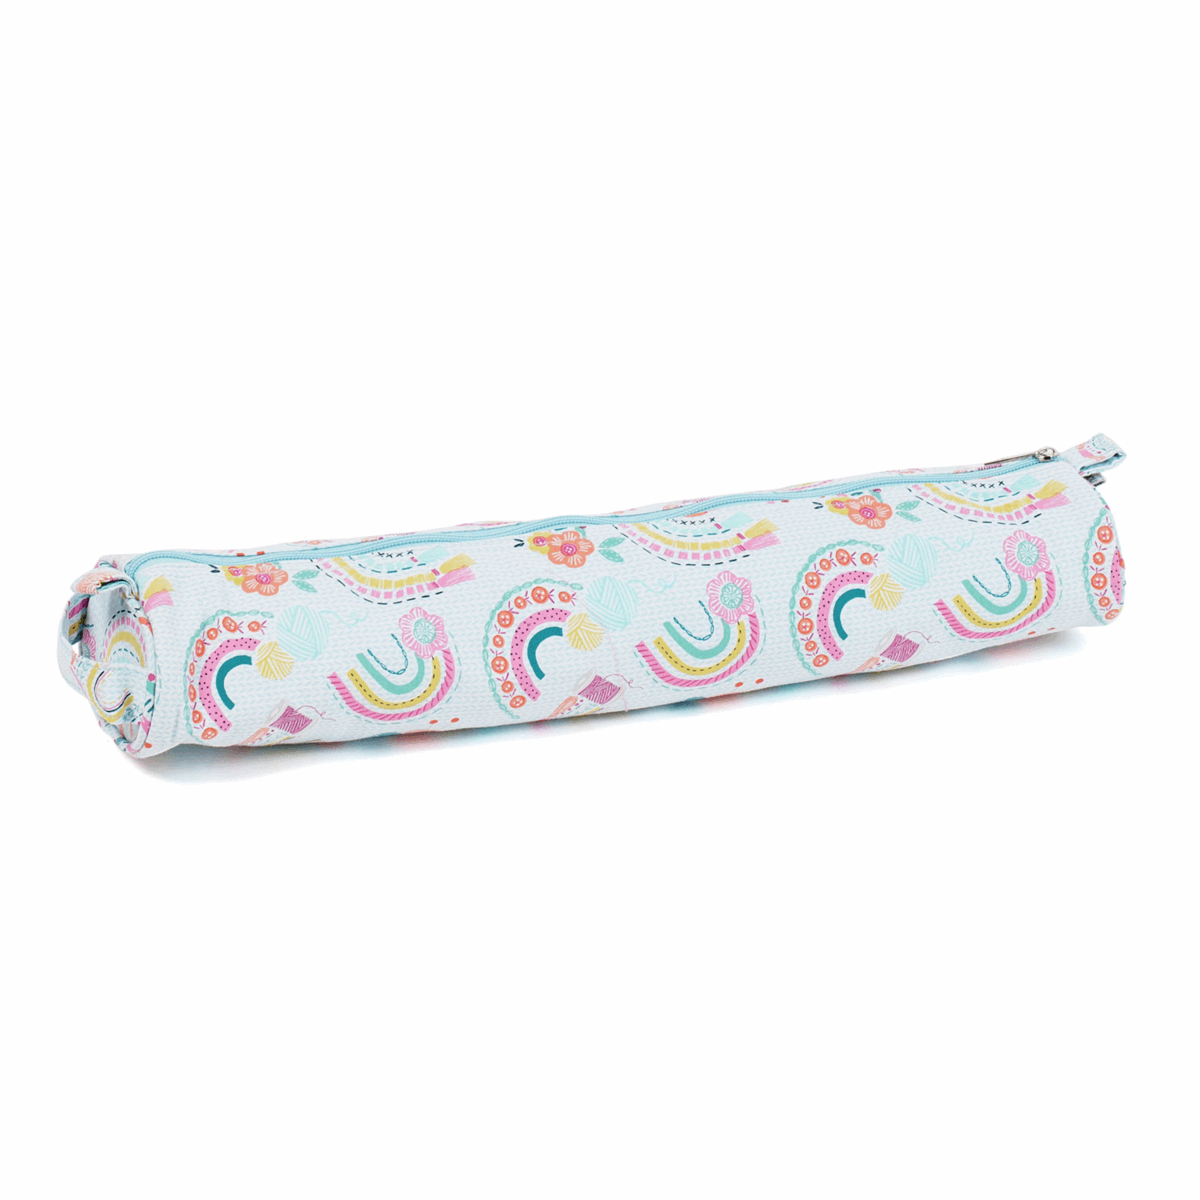 Picture of Knitting Pin Case: Soft: Rainbow: Pack of 3